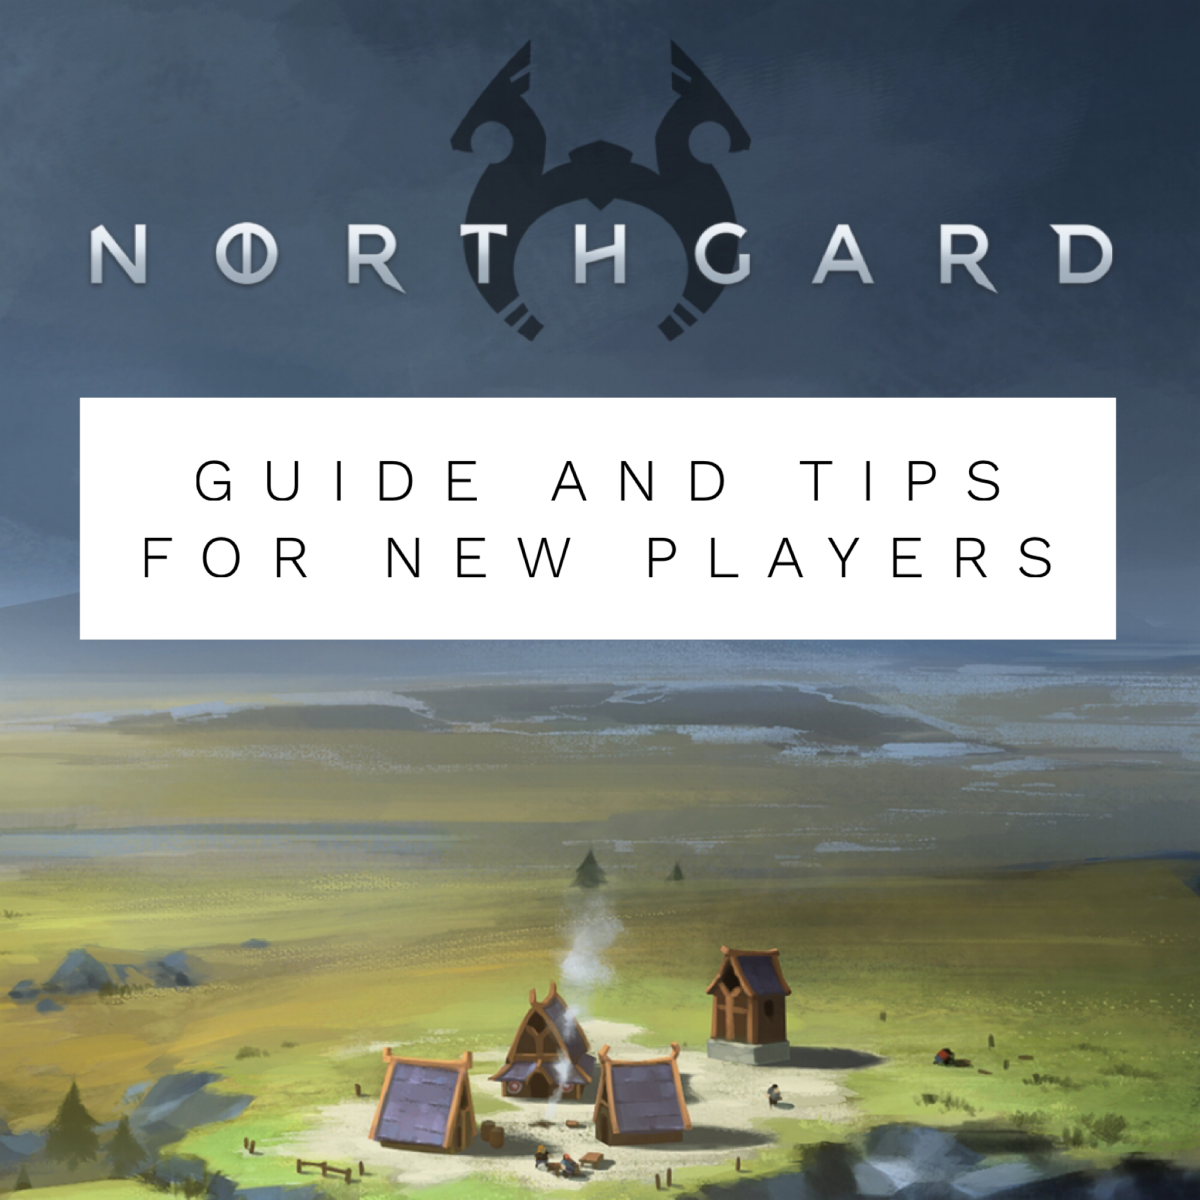 """Northgard's"" Story Mode feature is a good place to start learning the mechanics of the game."